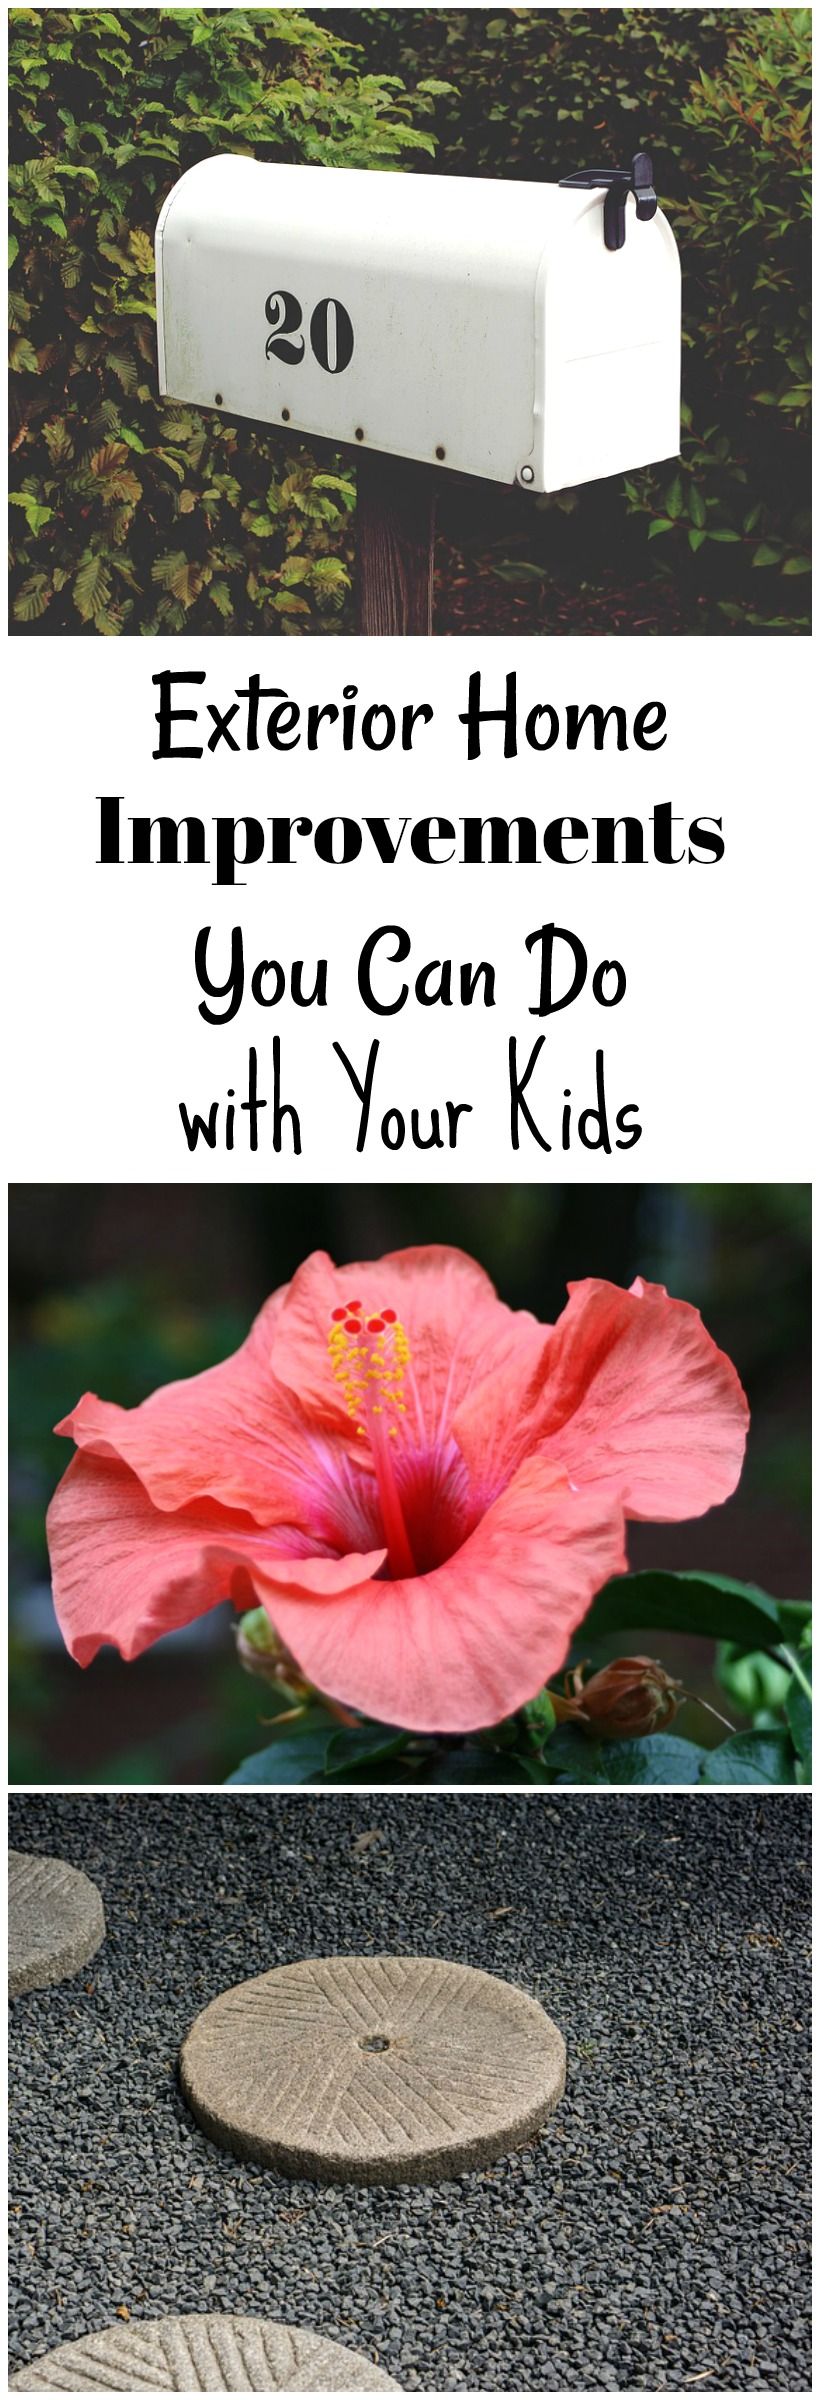 Exterior Home Improvements You Can Do with Your Kids